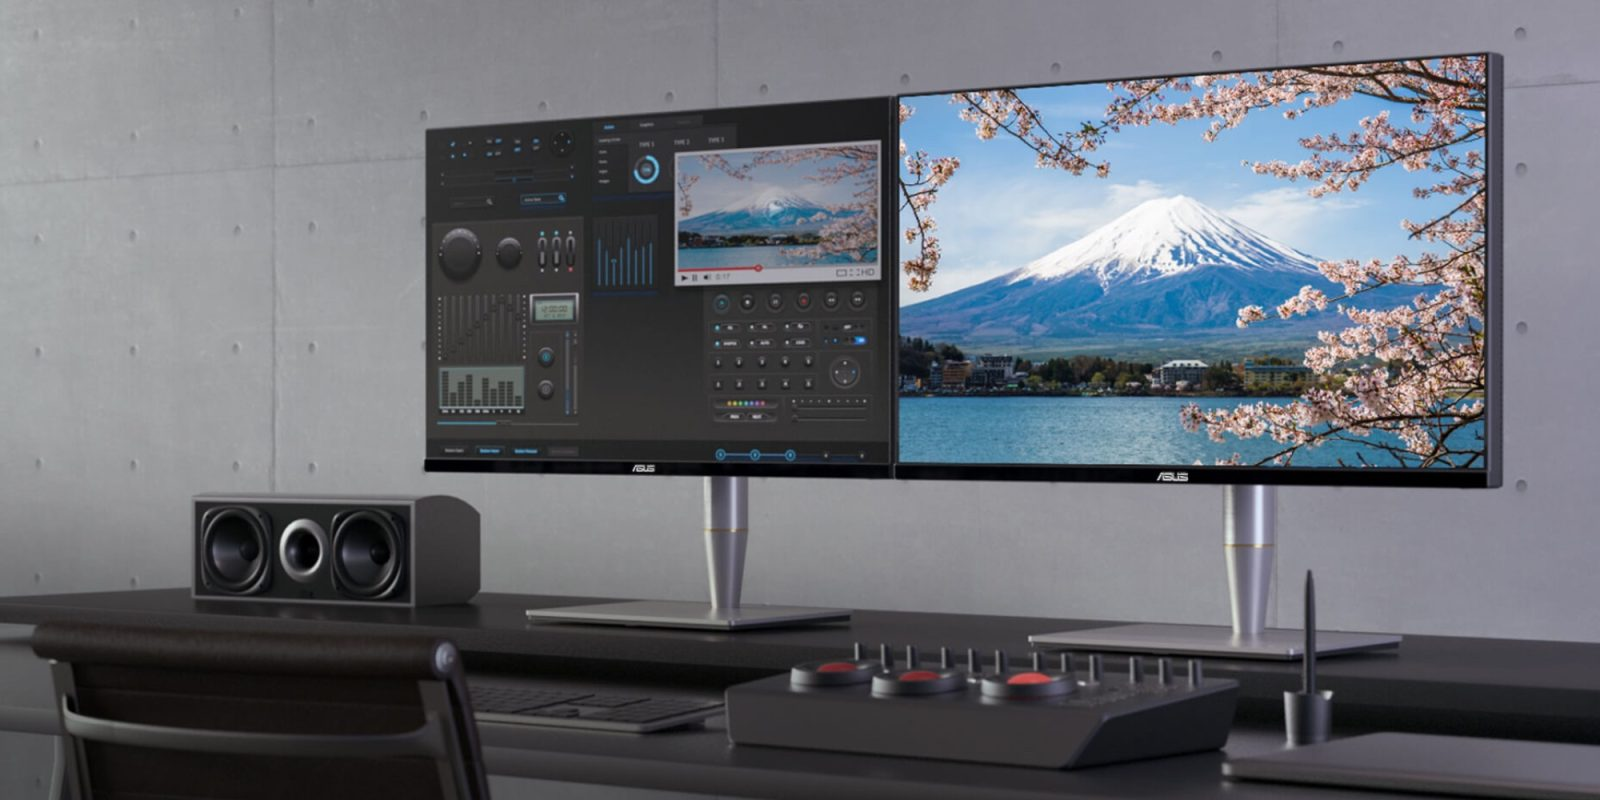 Save $400 on the ASUS ProArt 32-inch Thunderbolt 3 Monitor, more